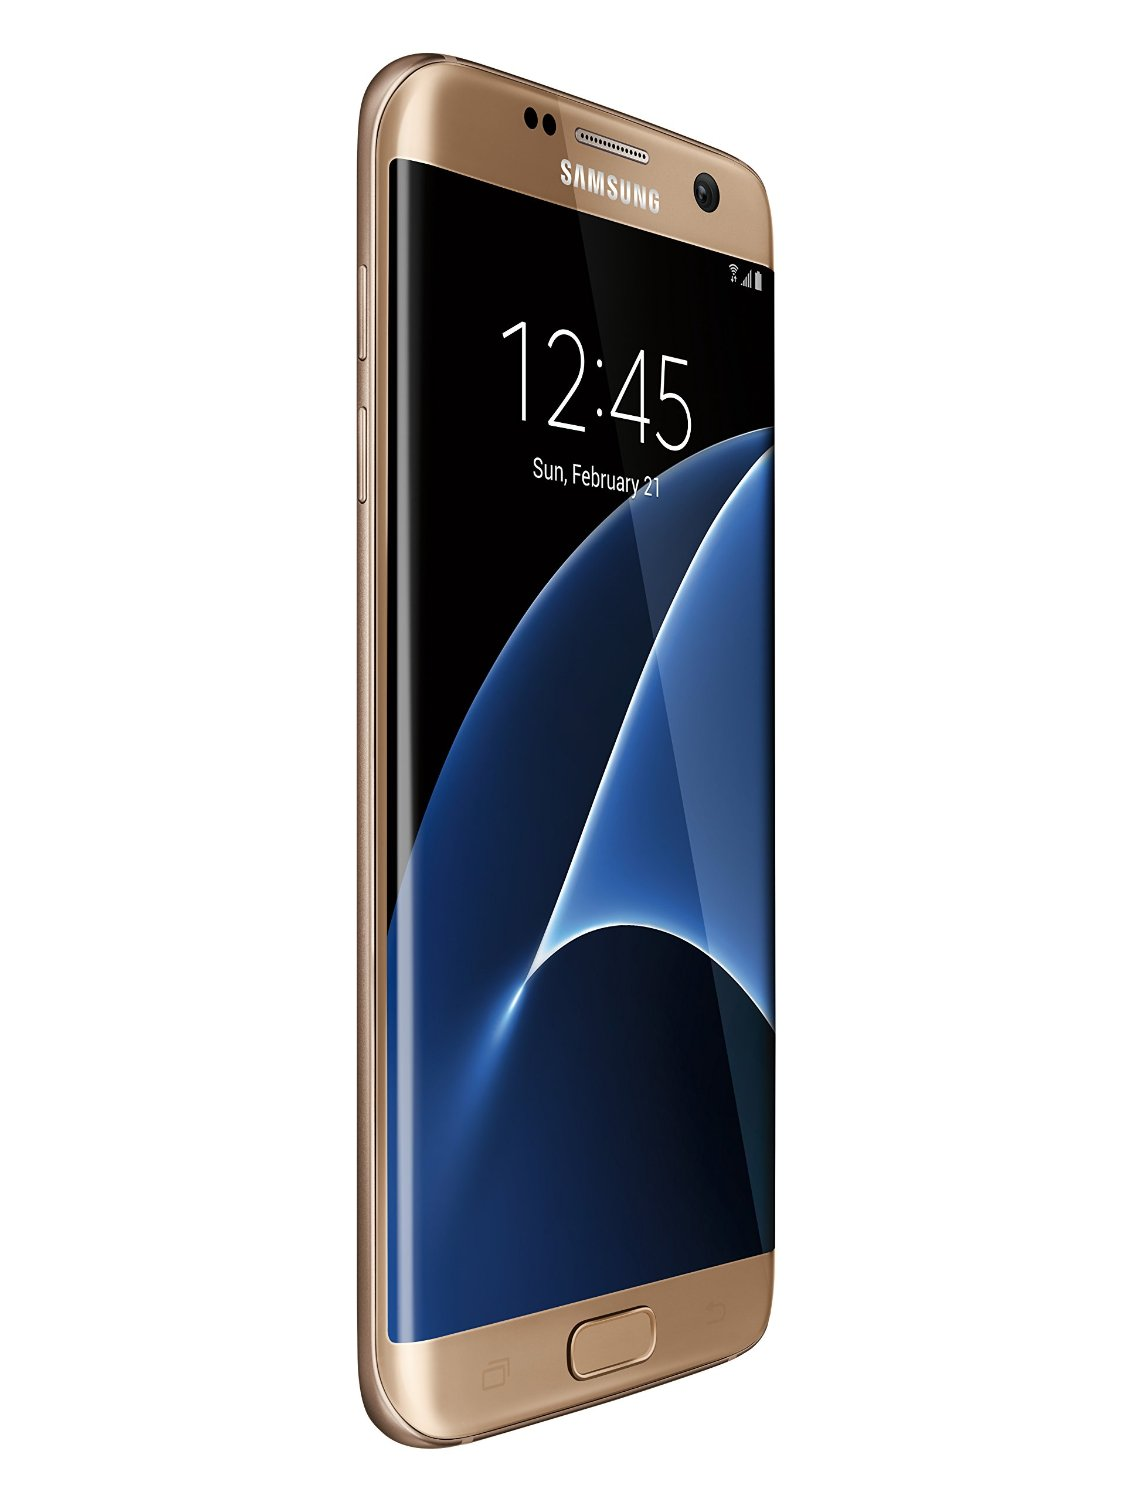 Samsung Galaxy S7 Edge Duos For Sale In Jamaica